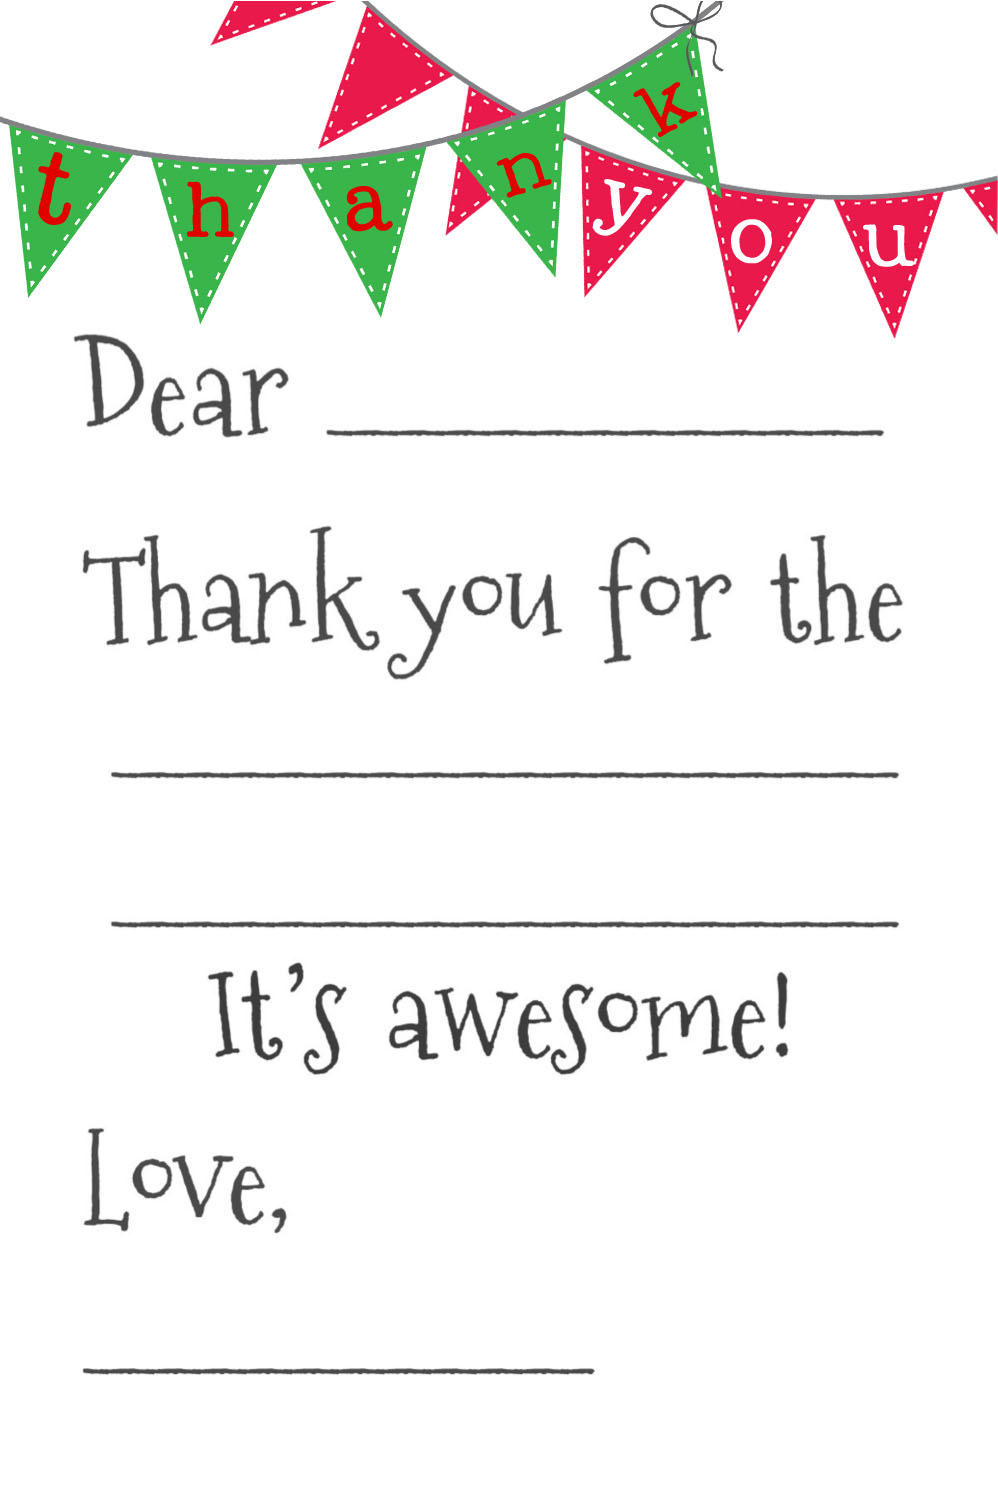 8 Best Images of Printable Blank Thank You Cards - Free ...